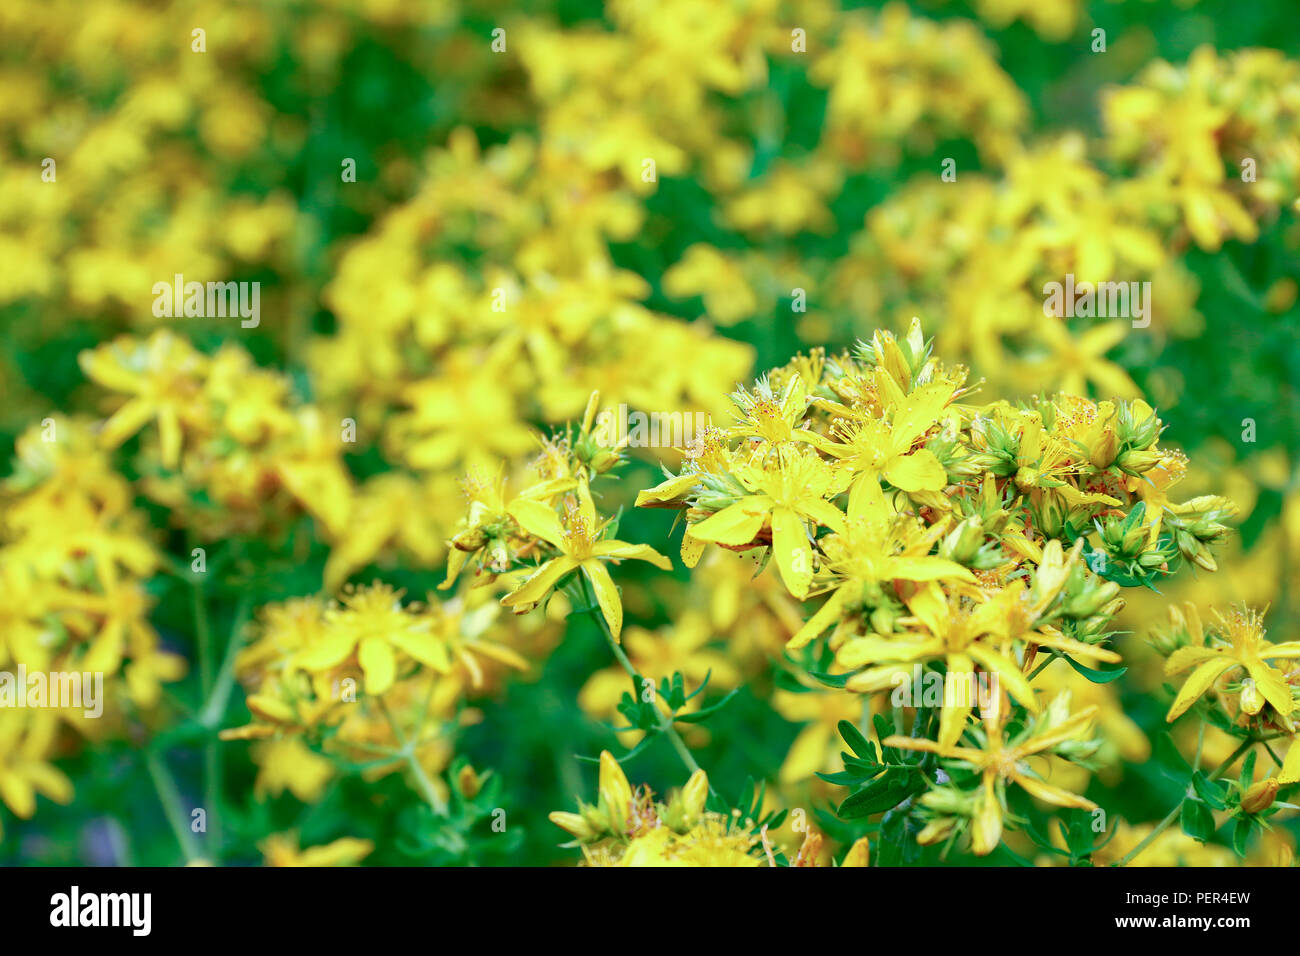 Yellow Flowers Of St Johns Wort A Medicinal Herb Used For The